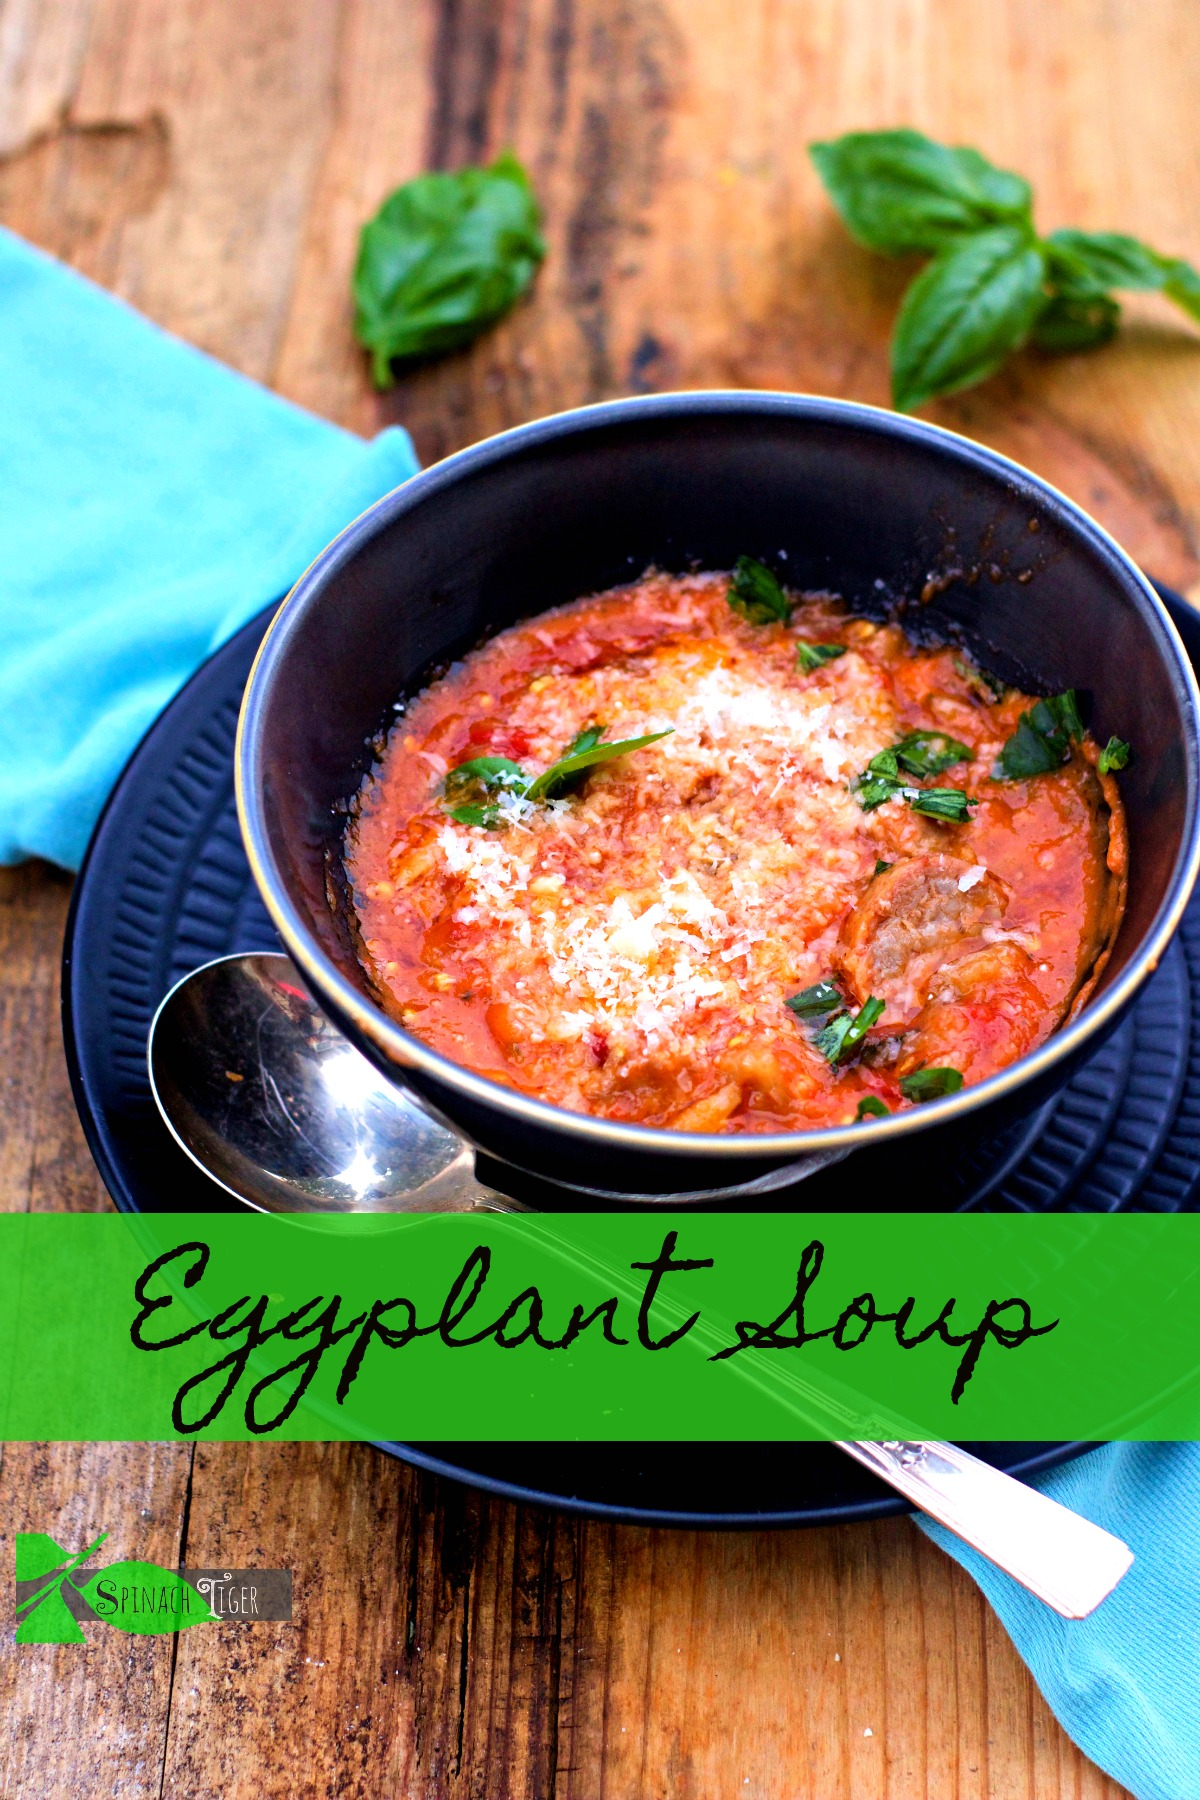 Italian Eggplant Soup with Sausage from Spinach Tiger